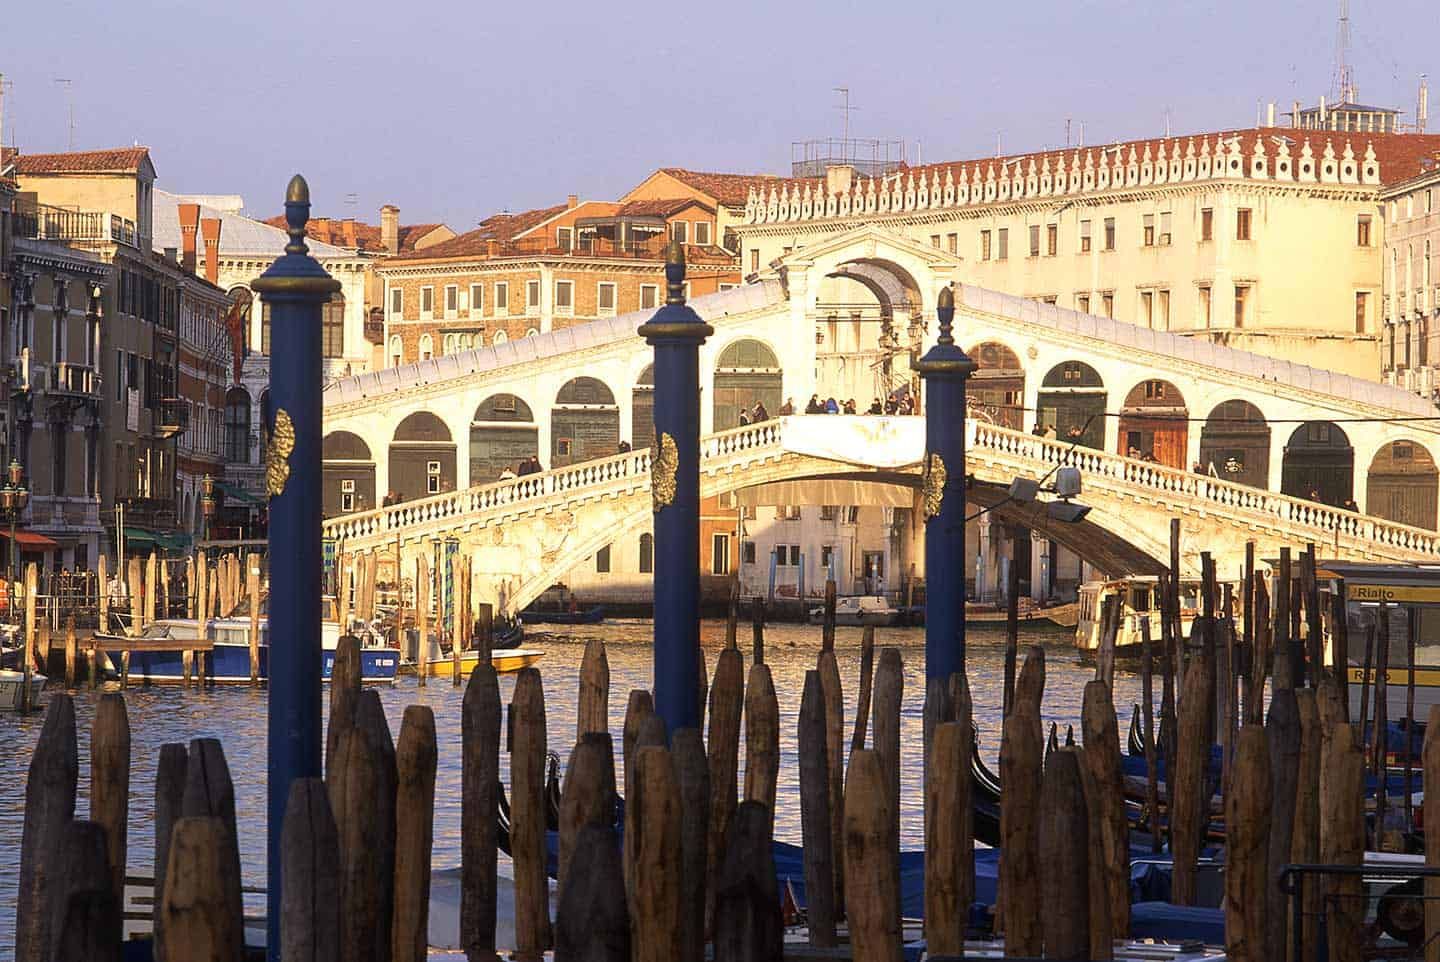 Image of the Rialto Bridge one of the top things in Venice to visit